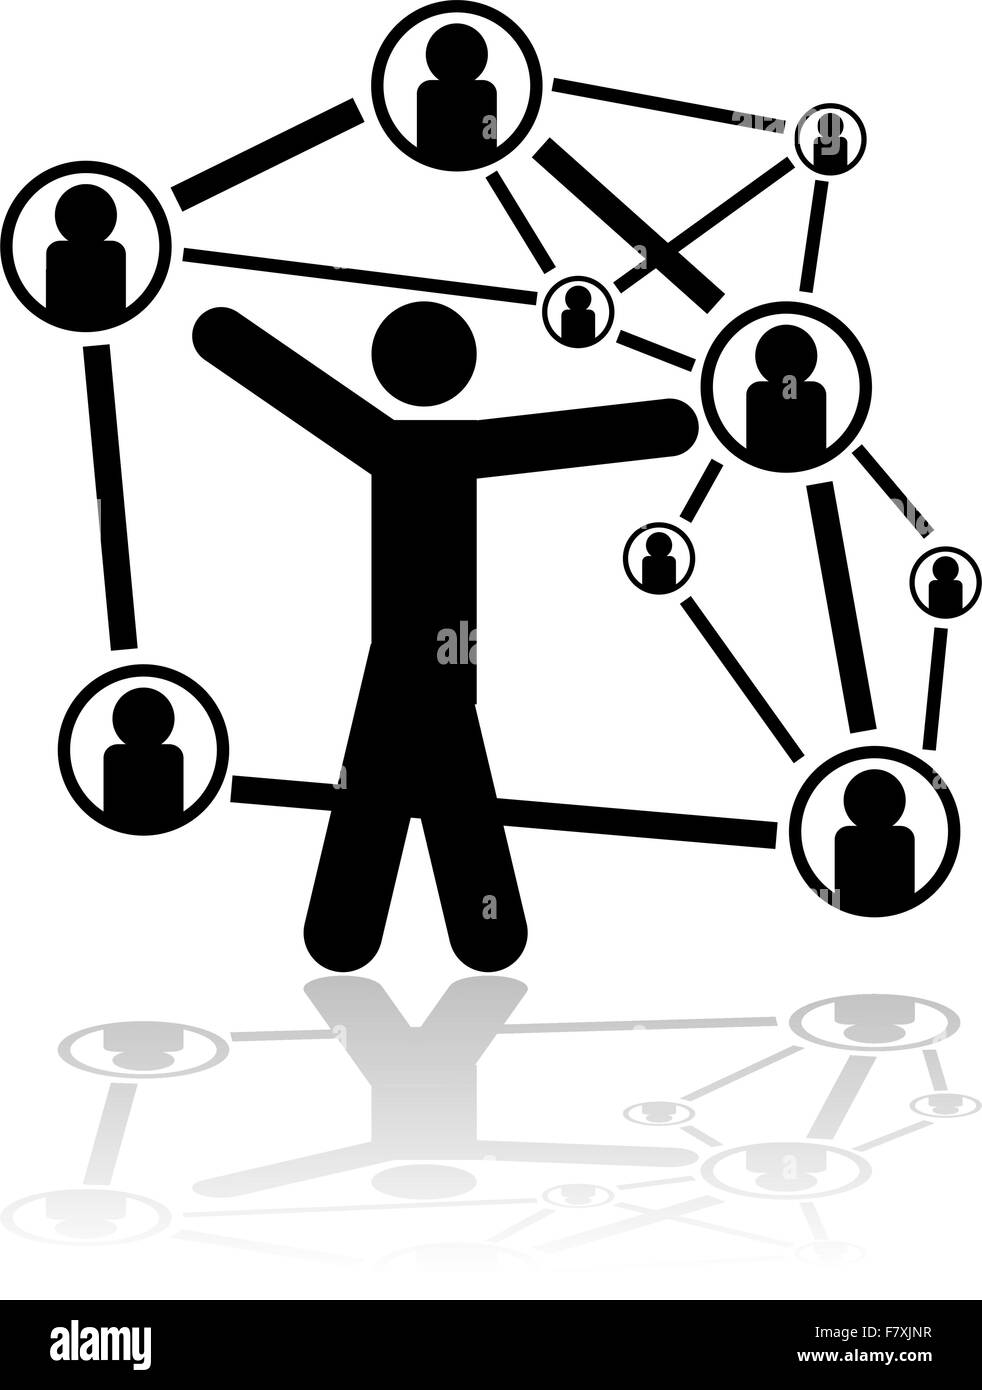 People connexions - Stock Image